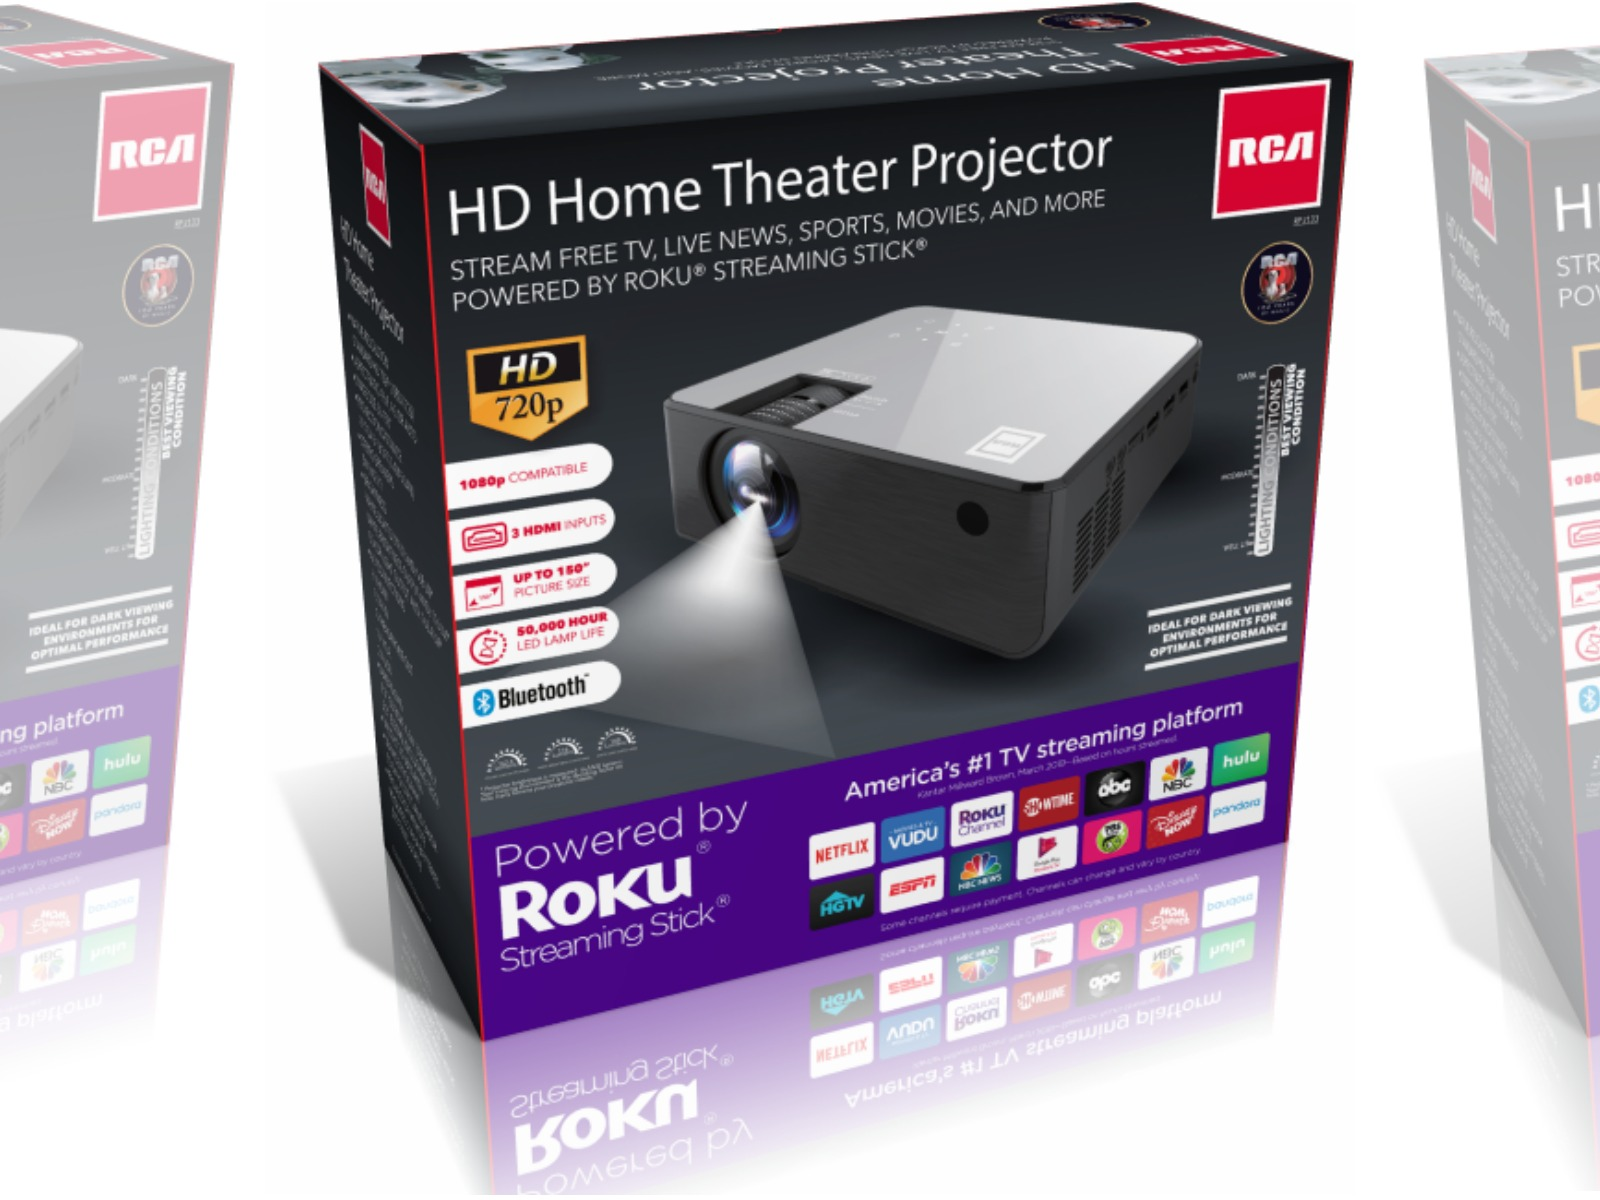 Large home theater projector in package